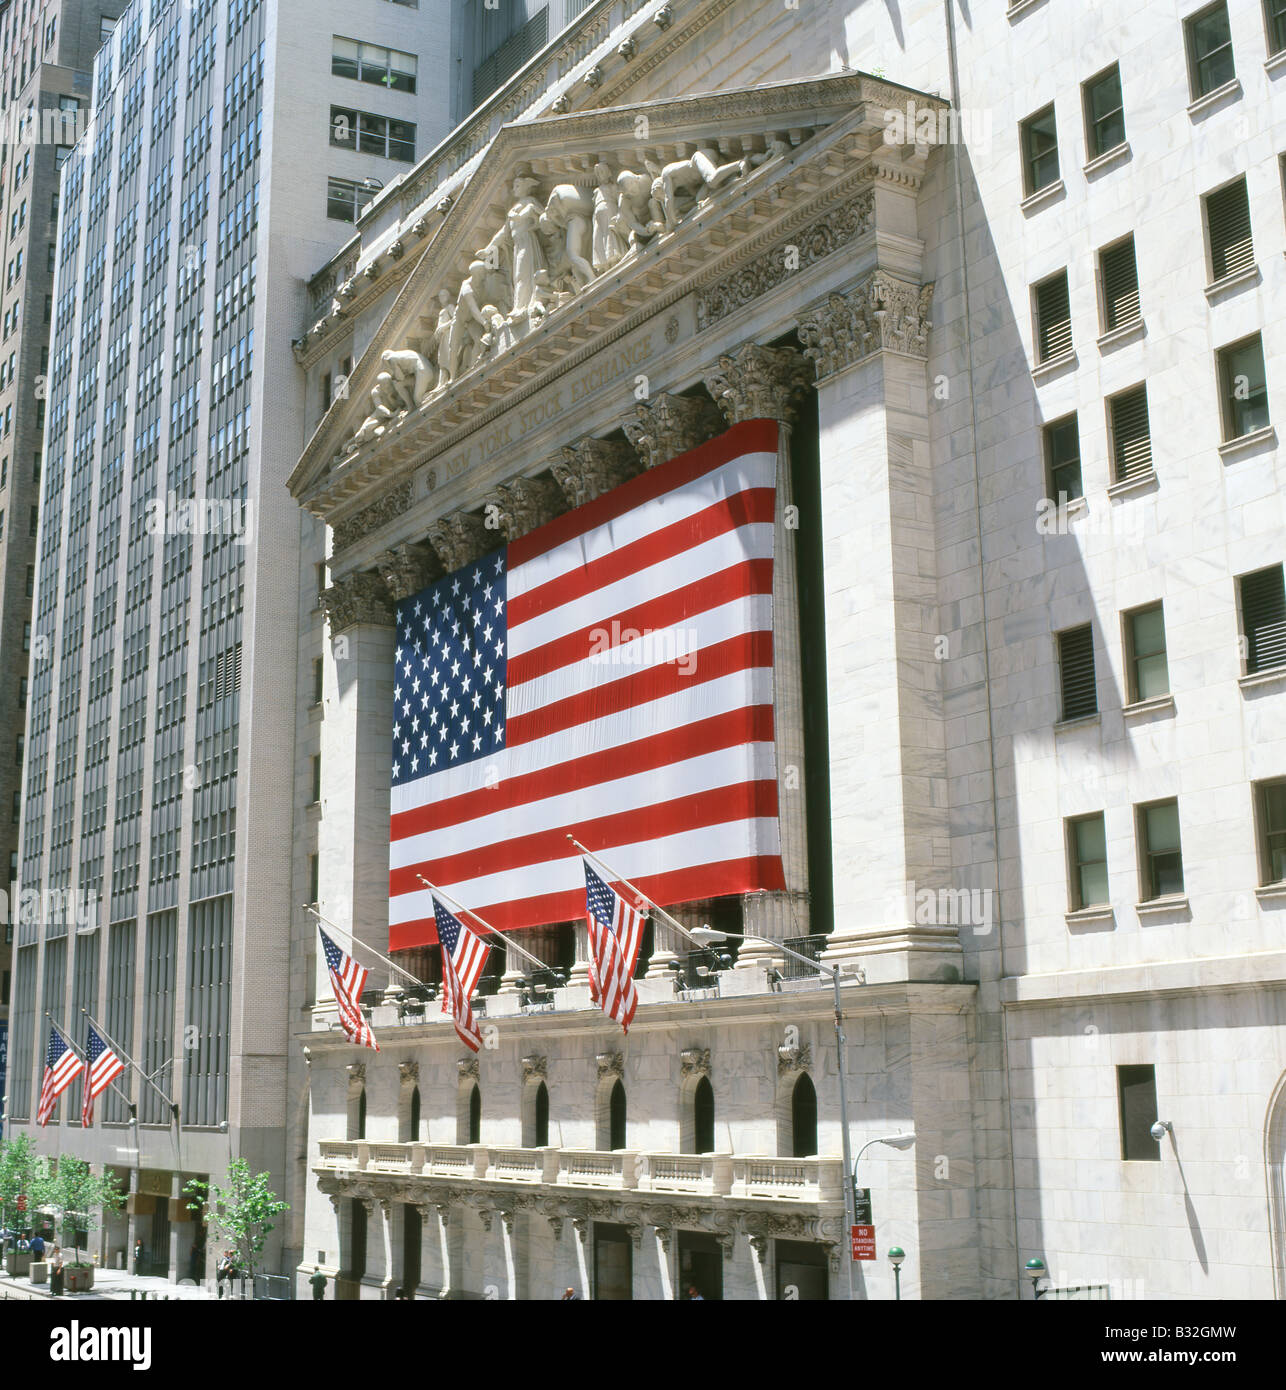 American flags draped on the exterior of the NYSE New York Stock Exchange building on Wall Street financial district - Stock Image